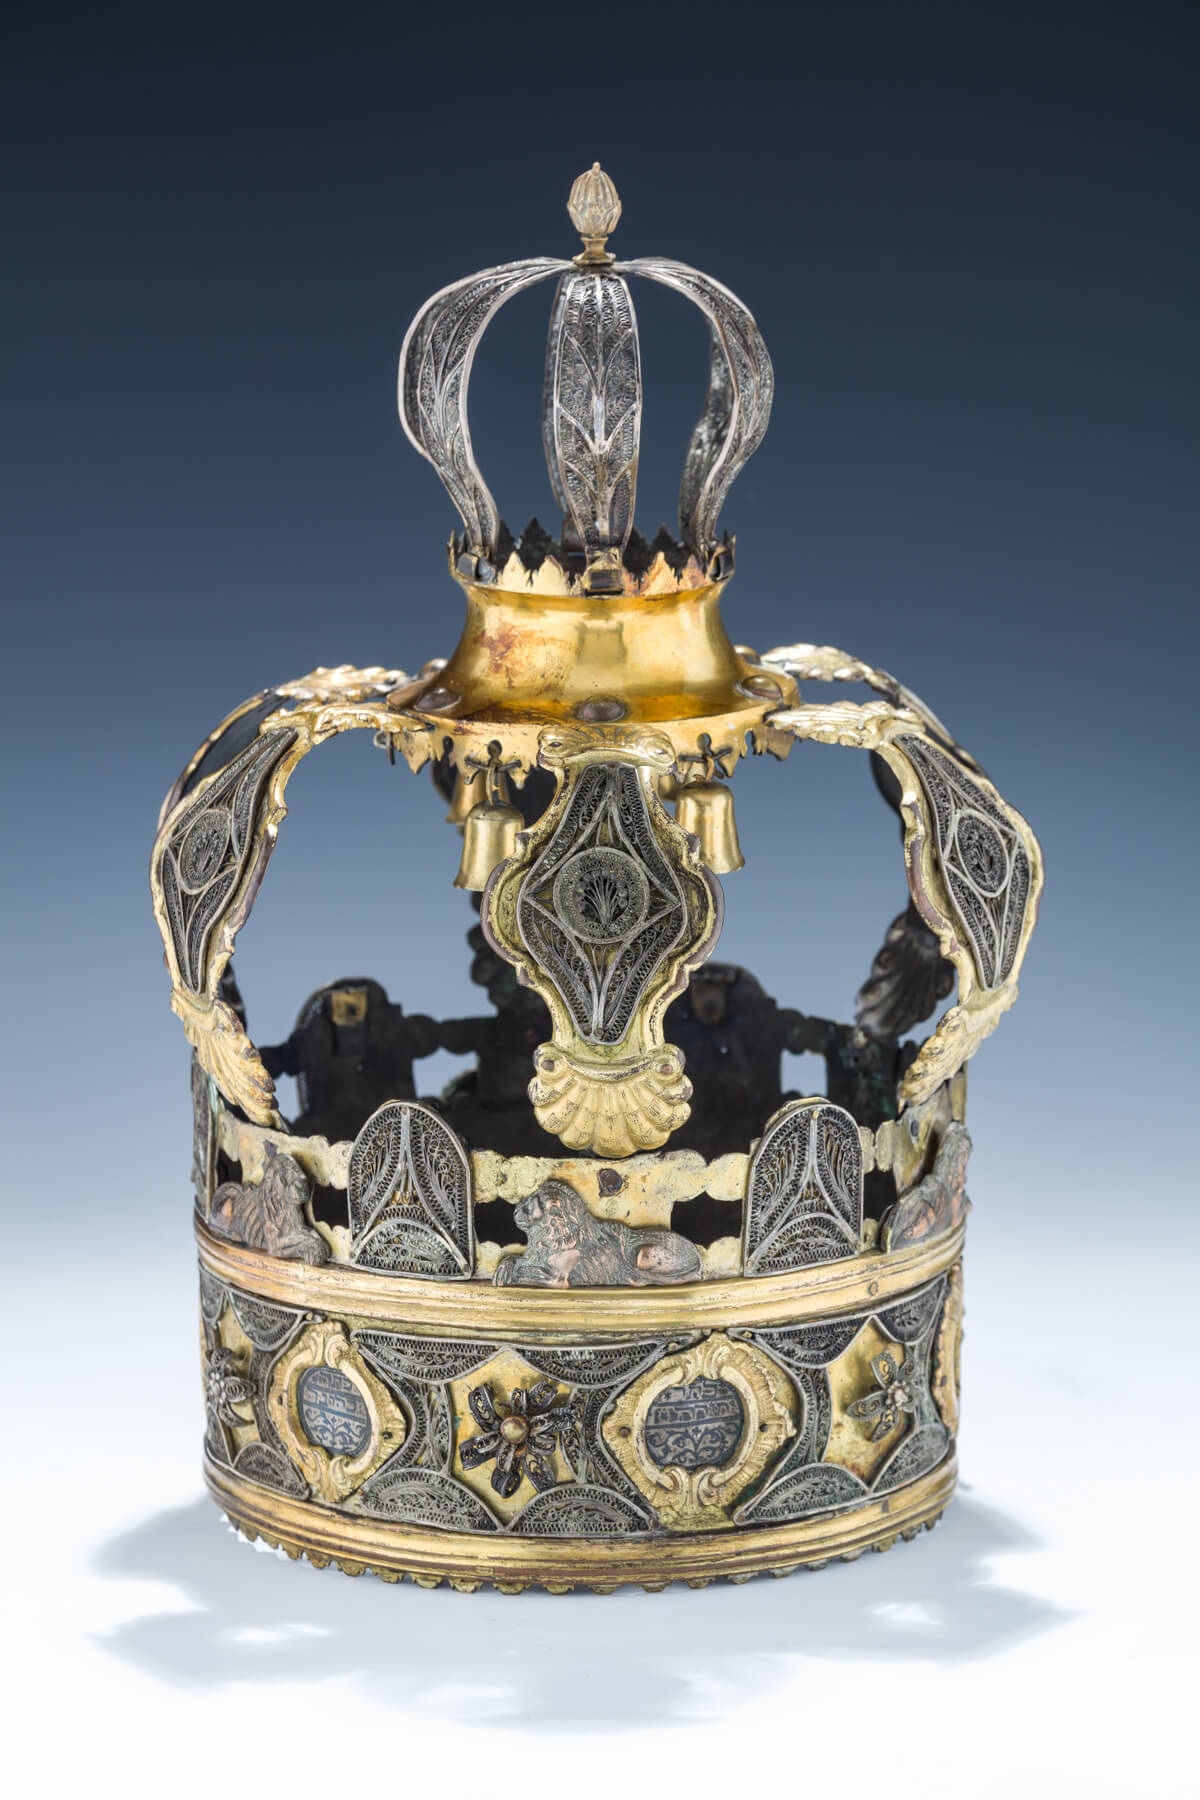 127. A Rare And Early Parcel Gilt And Niello Silver Torah Crown